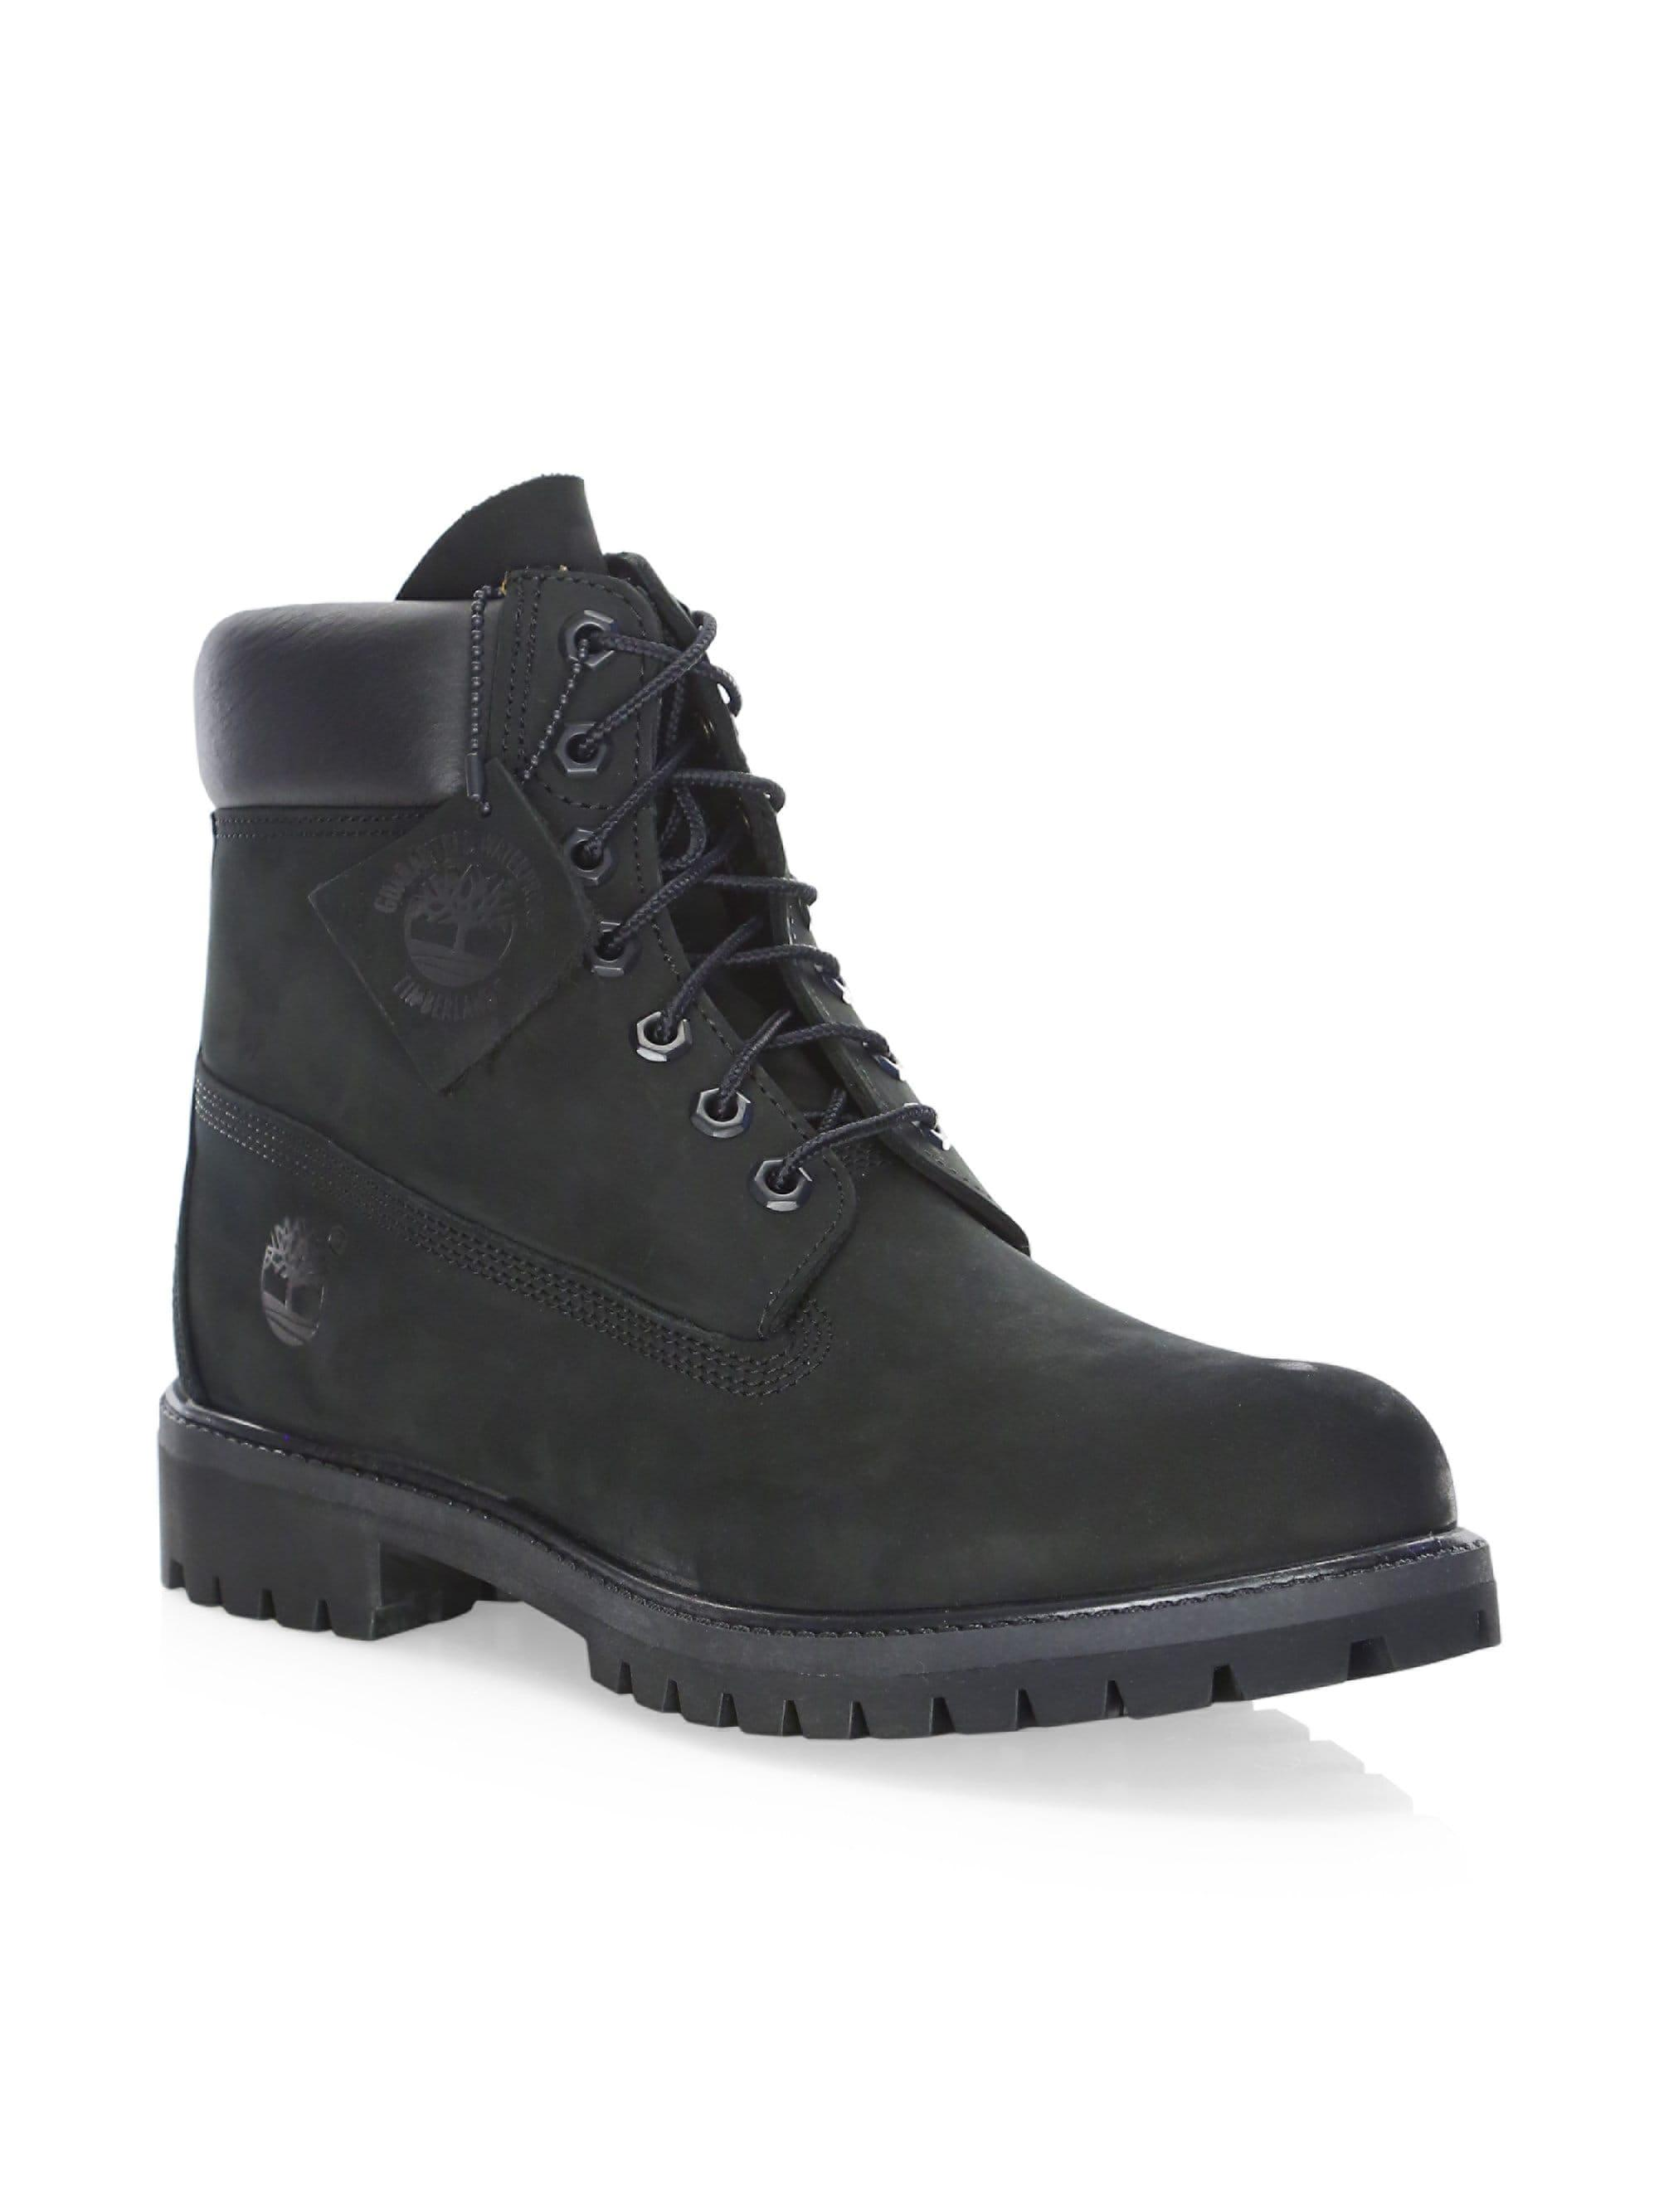 high quality the best attitude top brands Black 6 In Premium Wp Boot A1o7q Unisex Adult Ankle Boots